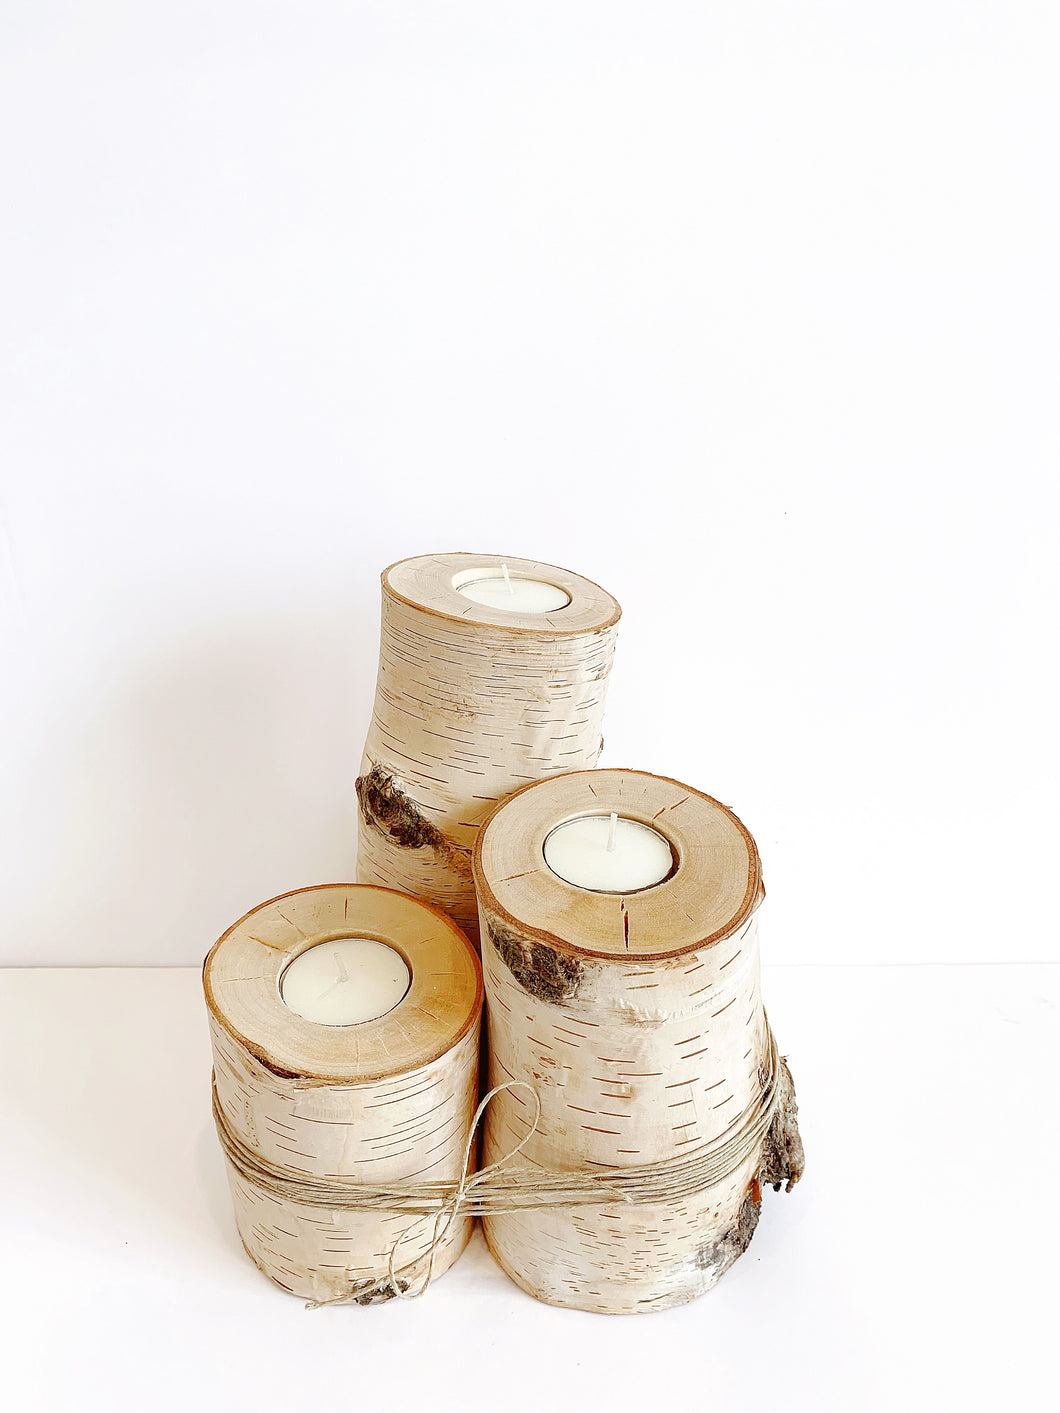 Real Birchwood Candle Holders (3 pcs)